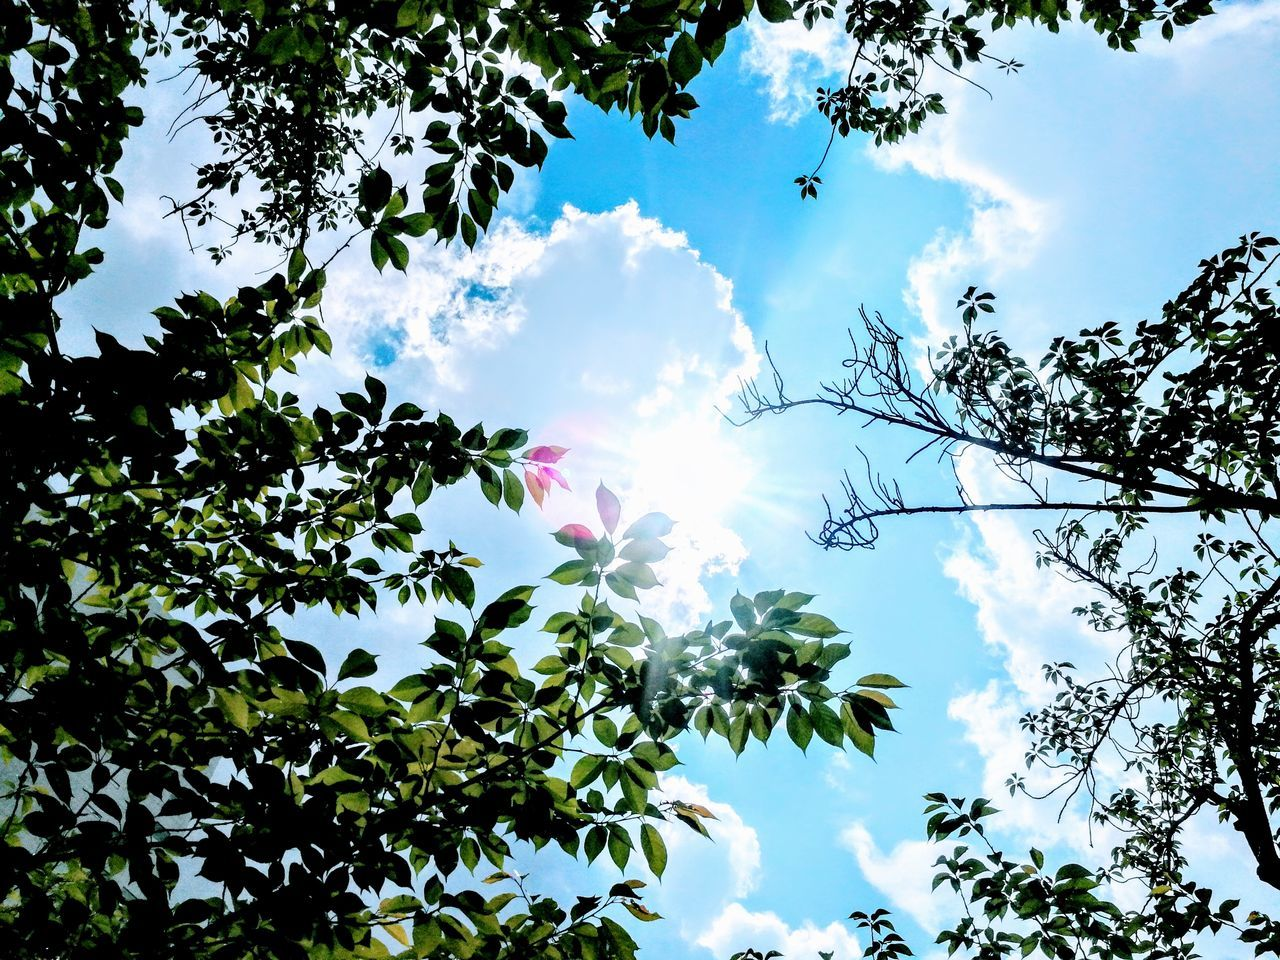 tree, low angle view, nature, sky, growth, beauty in nature, day, sunlight, no people, cloud - sky, branch, outdoors, sun, tranquility, leaf, hope, fragility